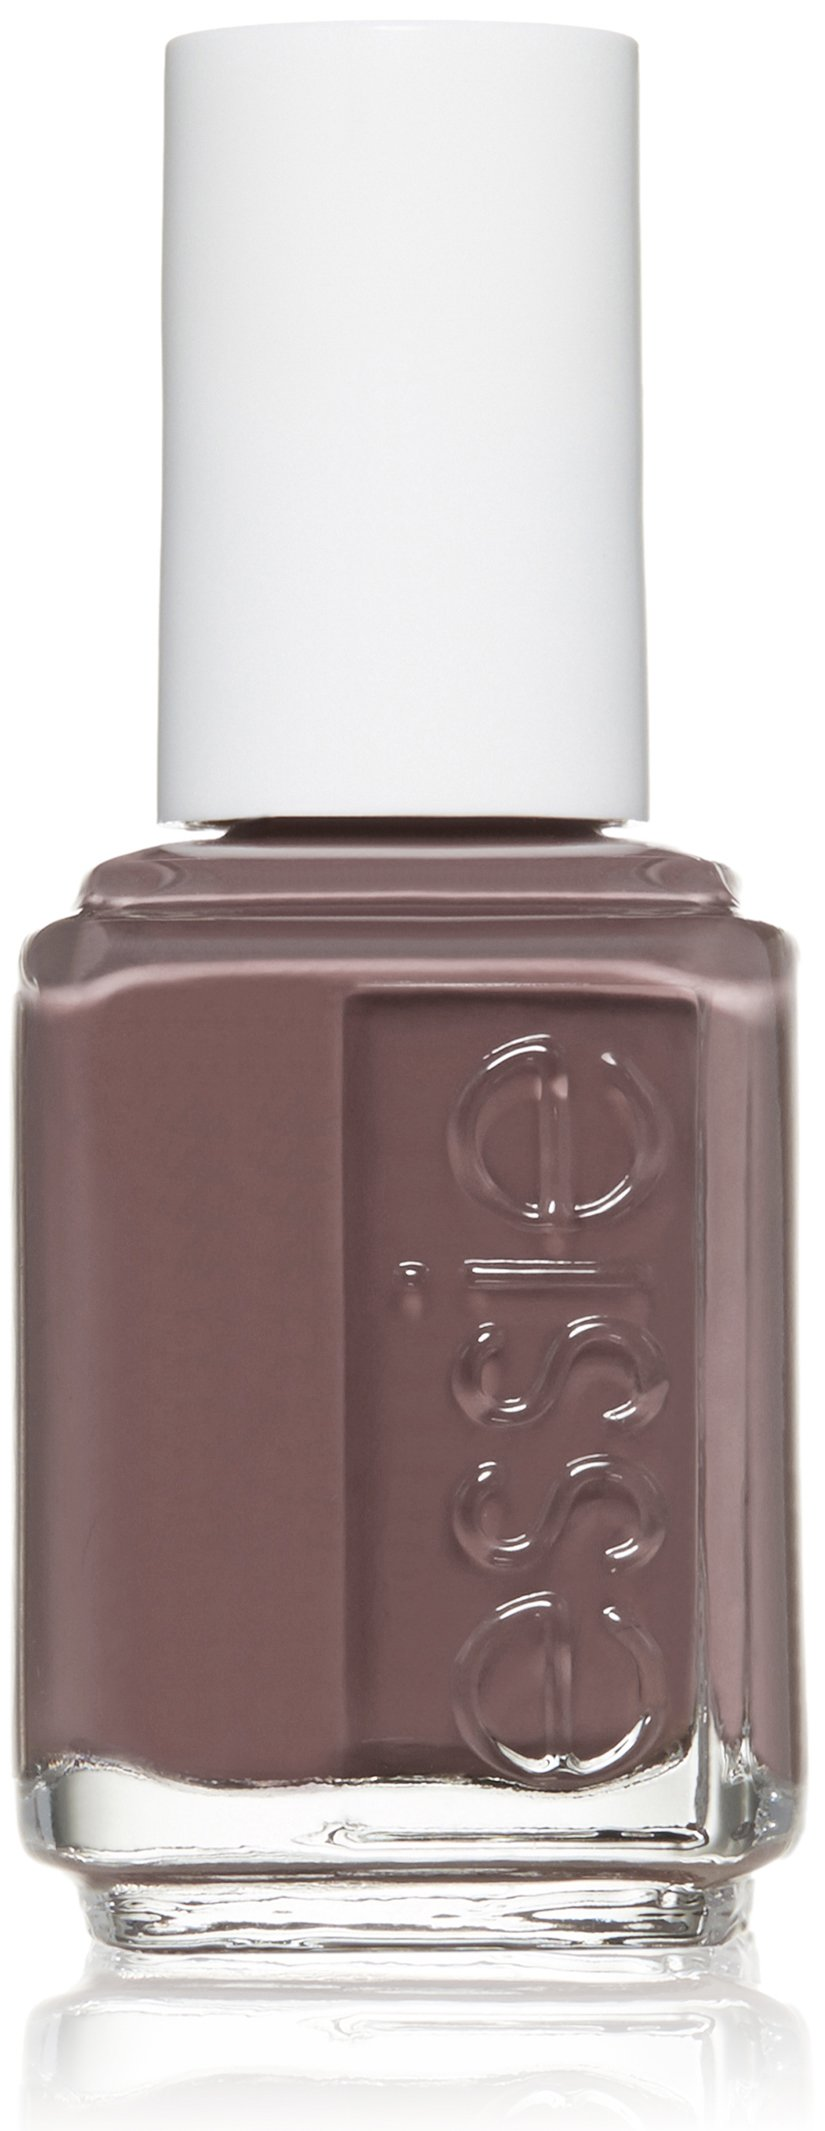 Amazon.com : essie nail polish, smokin\' hot, gray nail polish, 0.46 ...